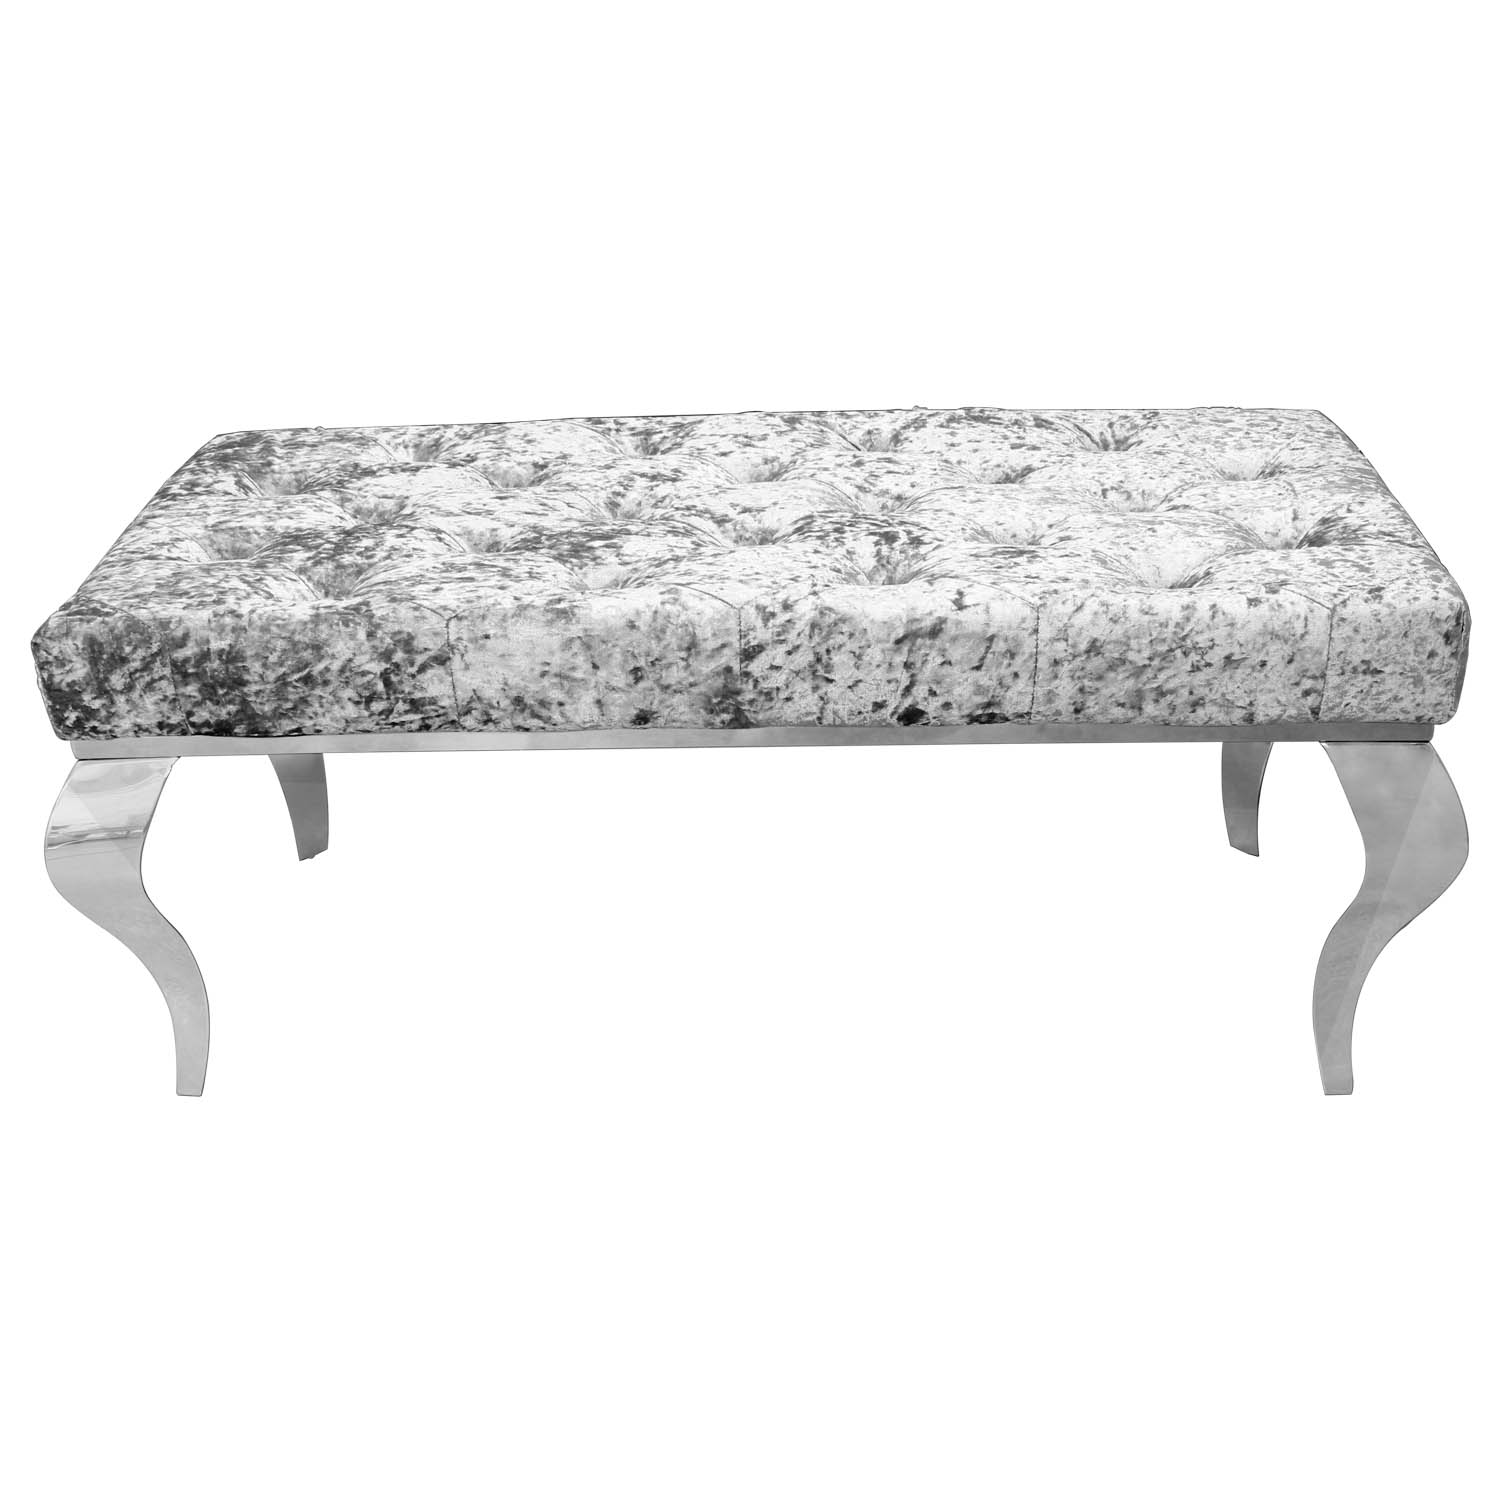 Details About Crushed Velvet Grey Bench Chaise Lounge Chair Living Room Sofa Seat Furniture